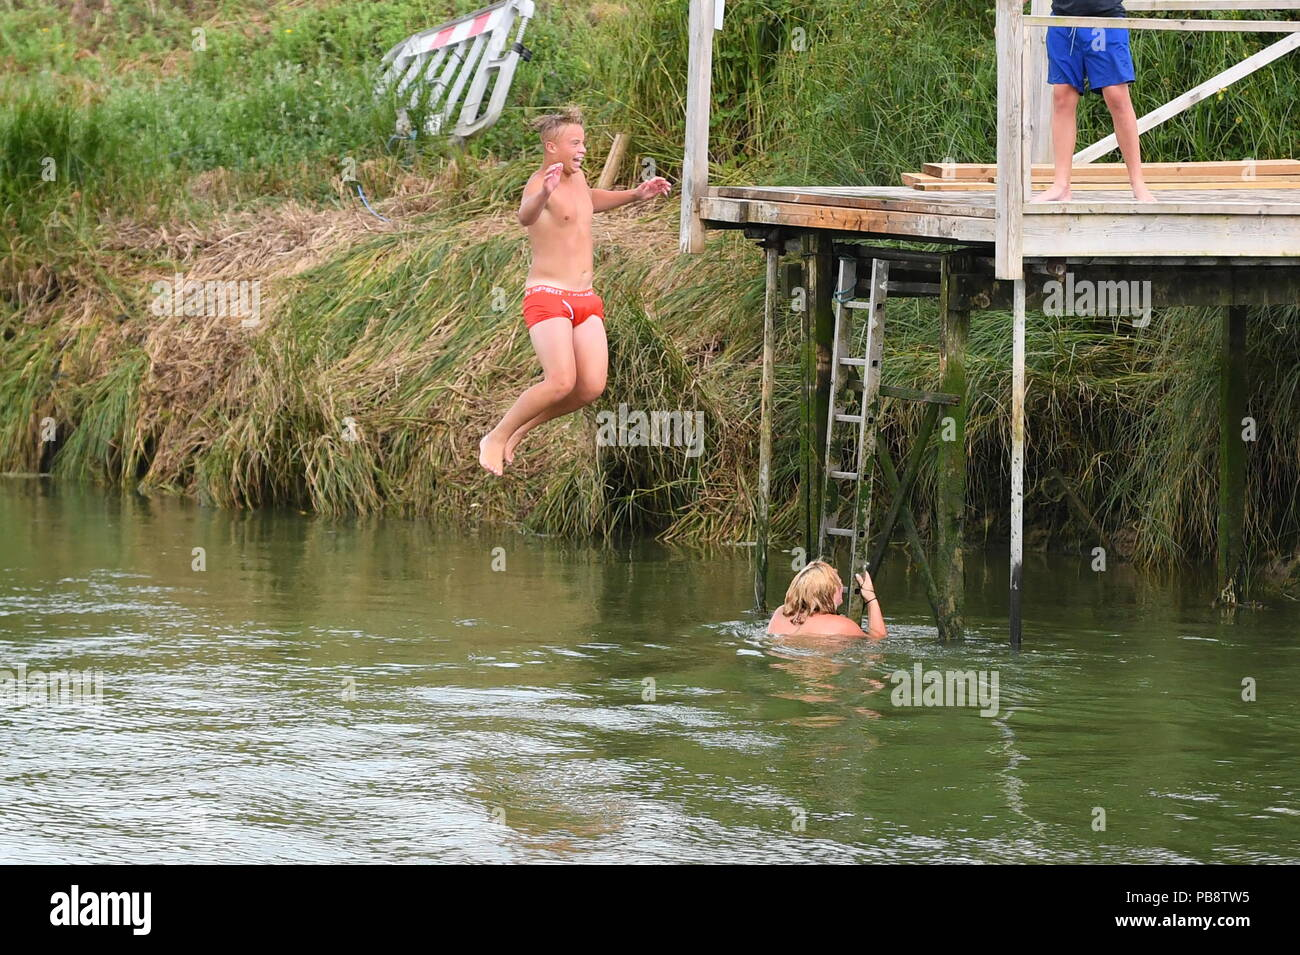 Young people wearing only shorts jumping into a river during the Summer 2018 heatwave in West Sussex, England, UK. - Stock Image